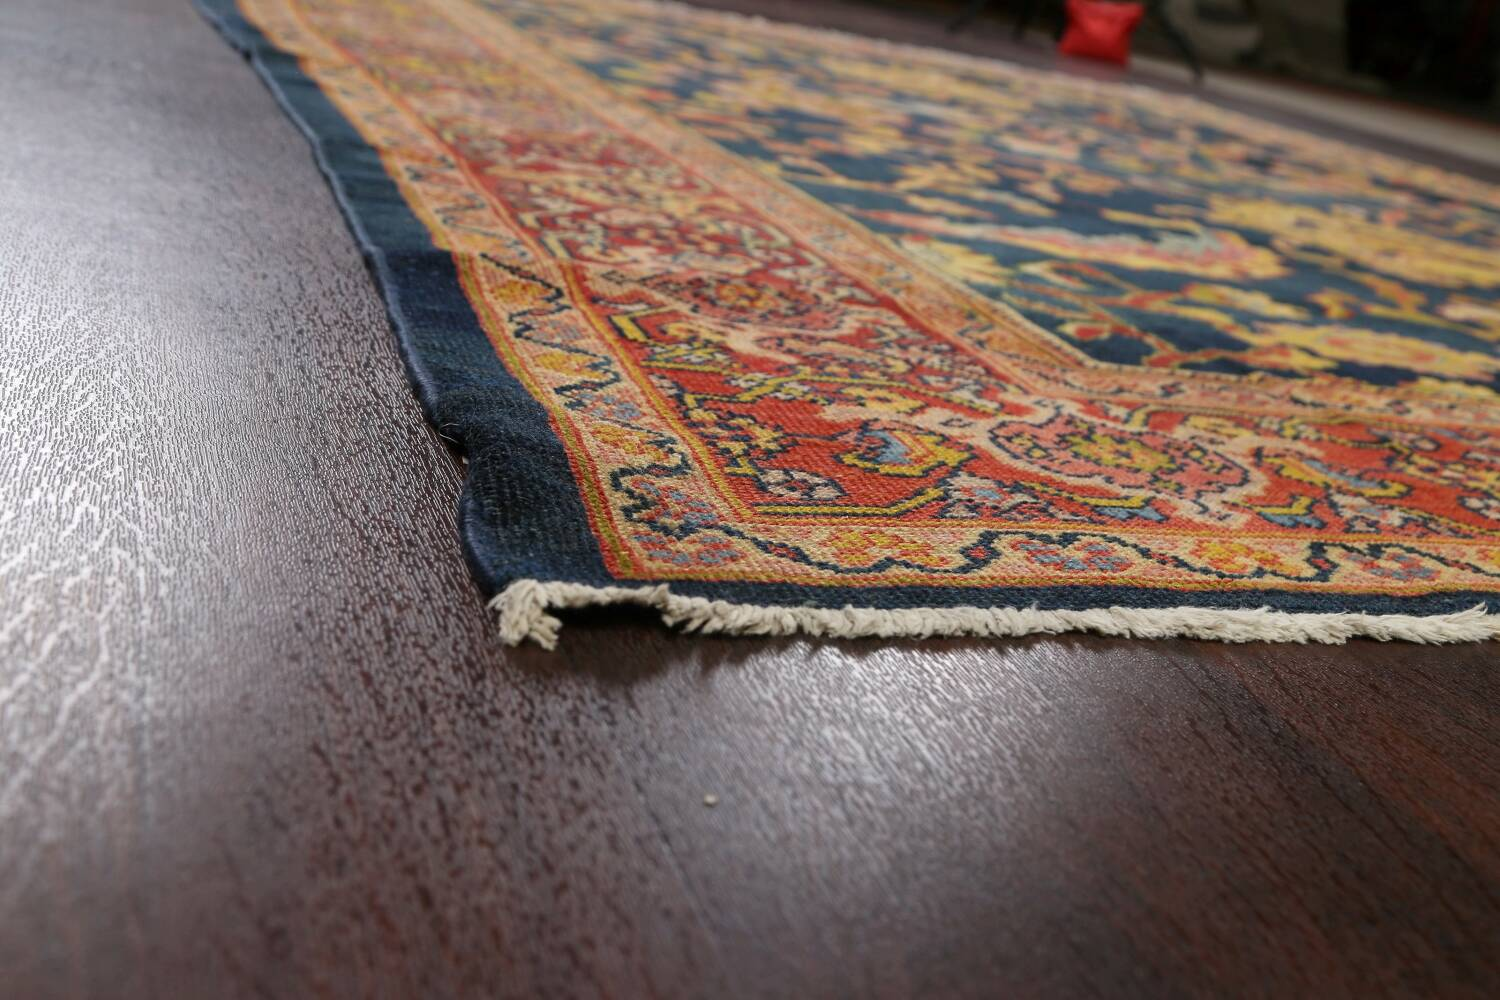 Pre-1900 Antique Vegetable Dye Sultanabad Persian Area Rug 9x10 image 6